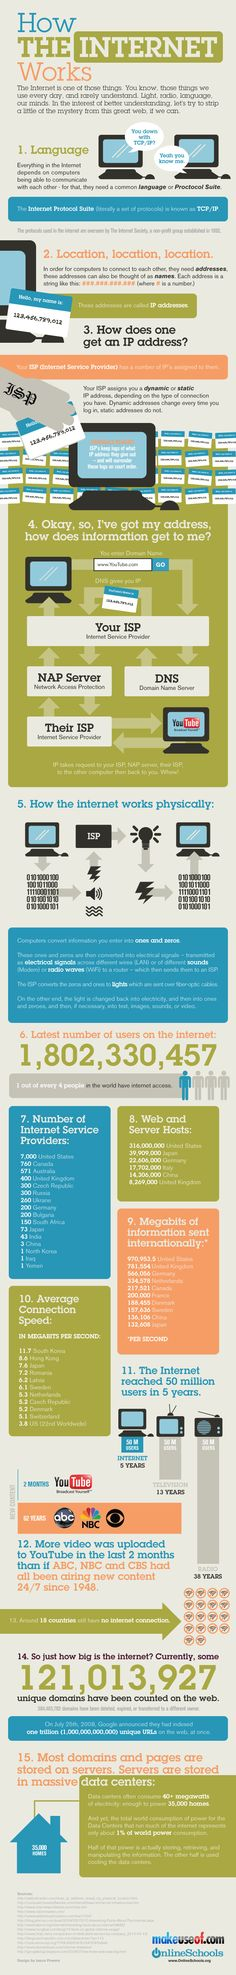 How does the internet work #infographic #socialmedia #in